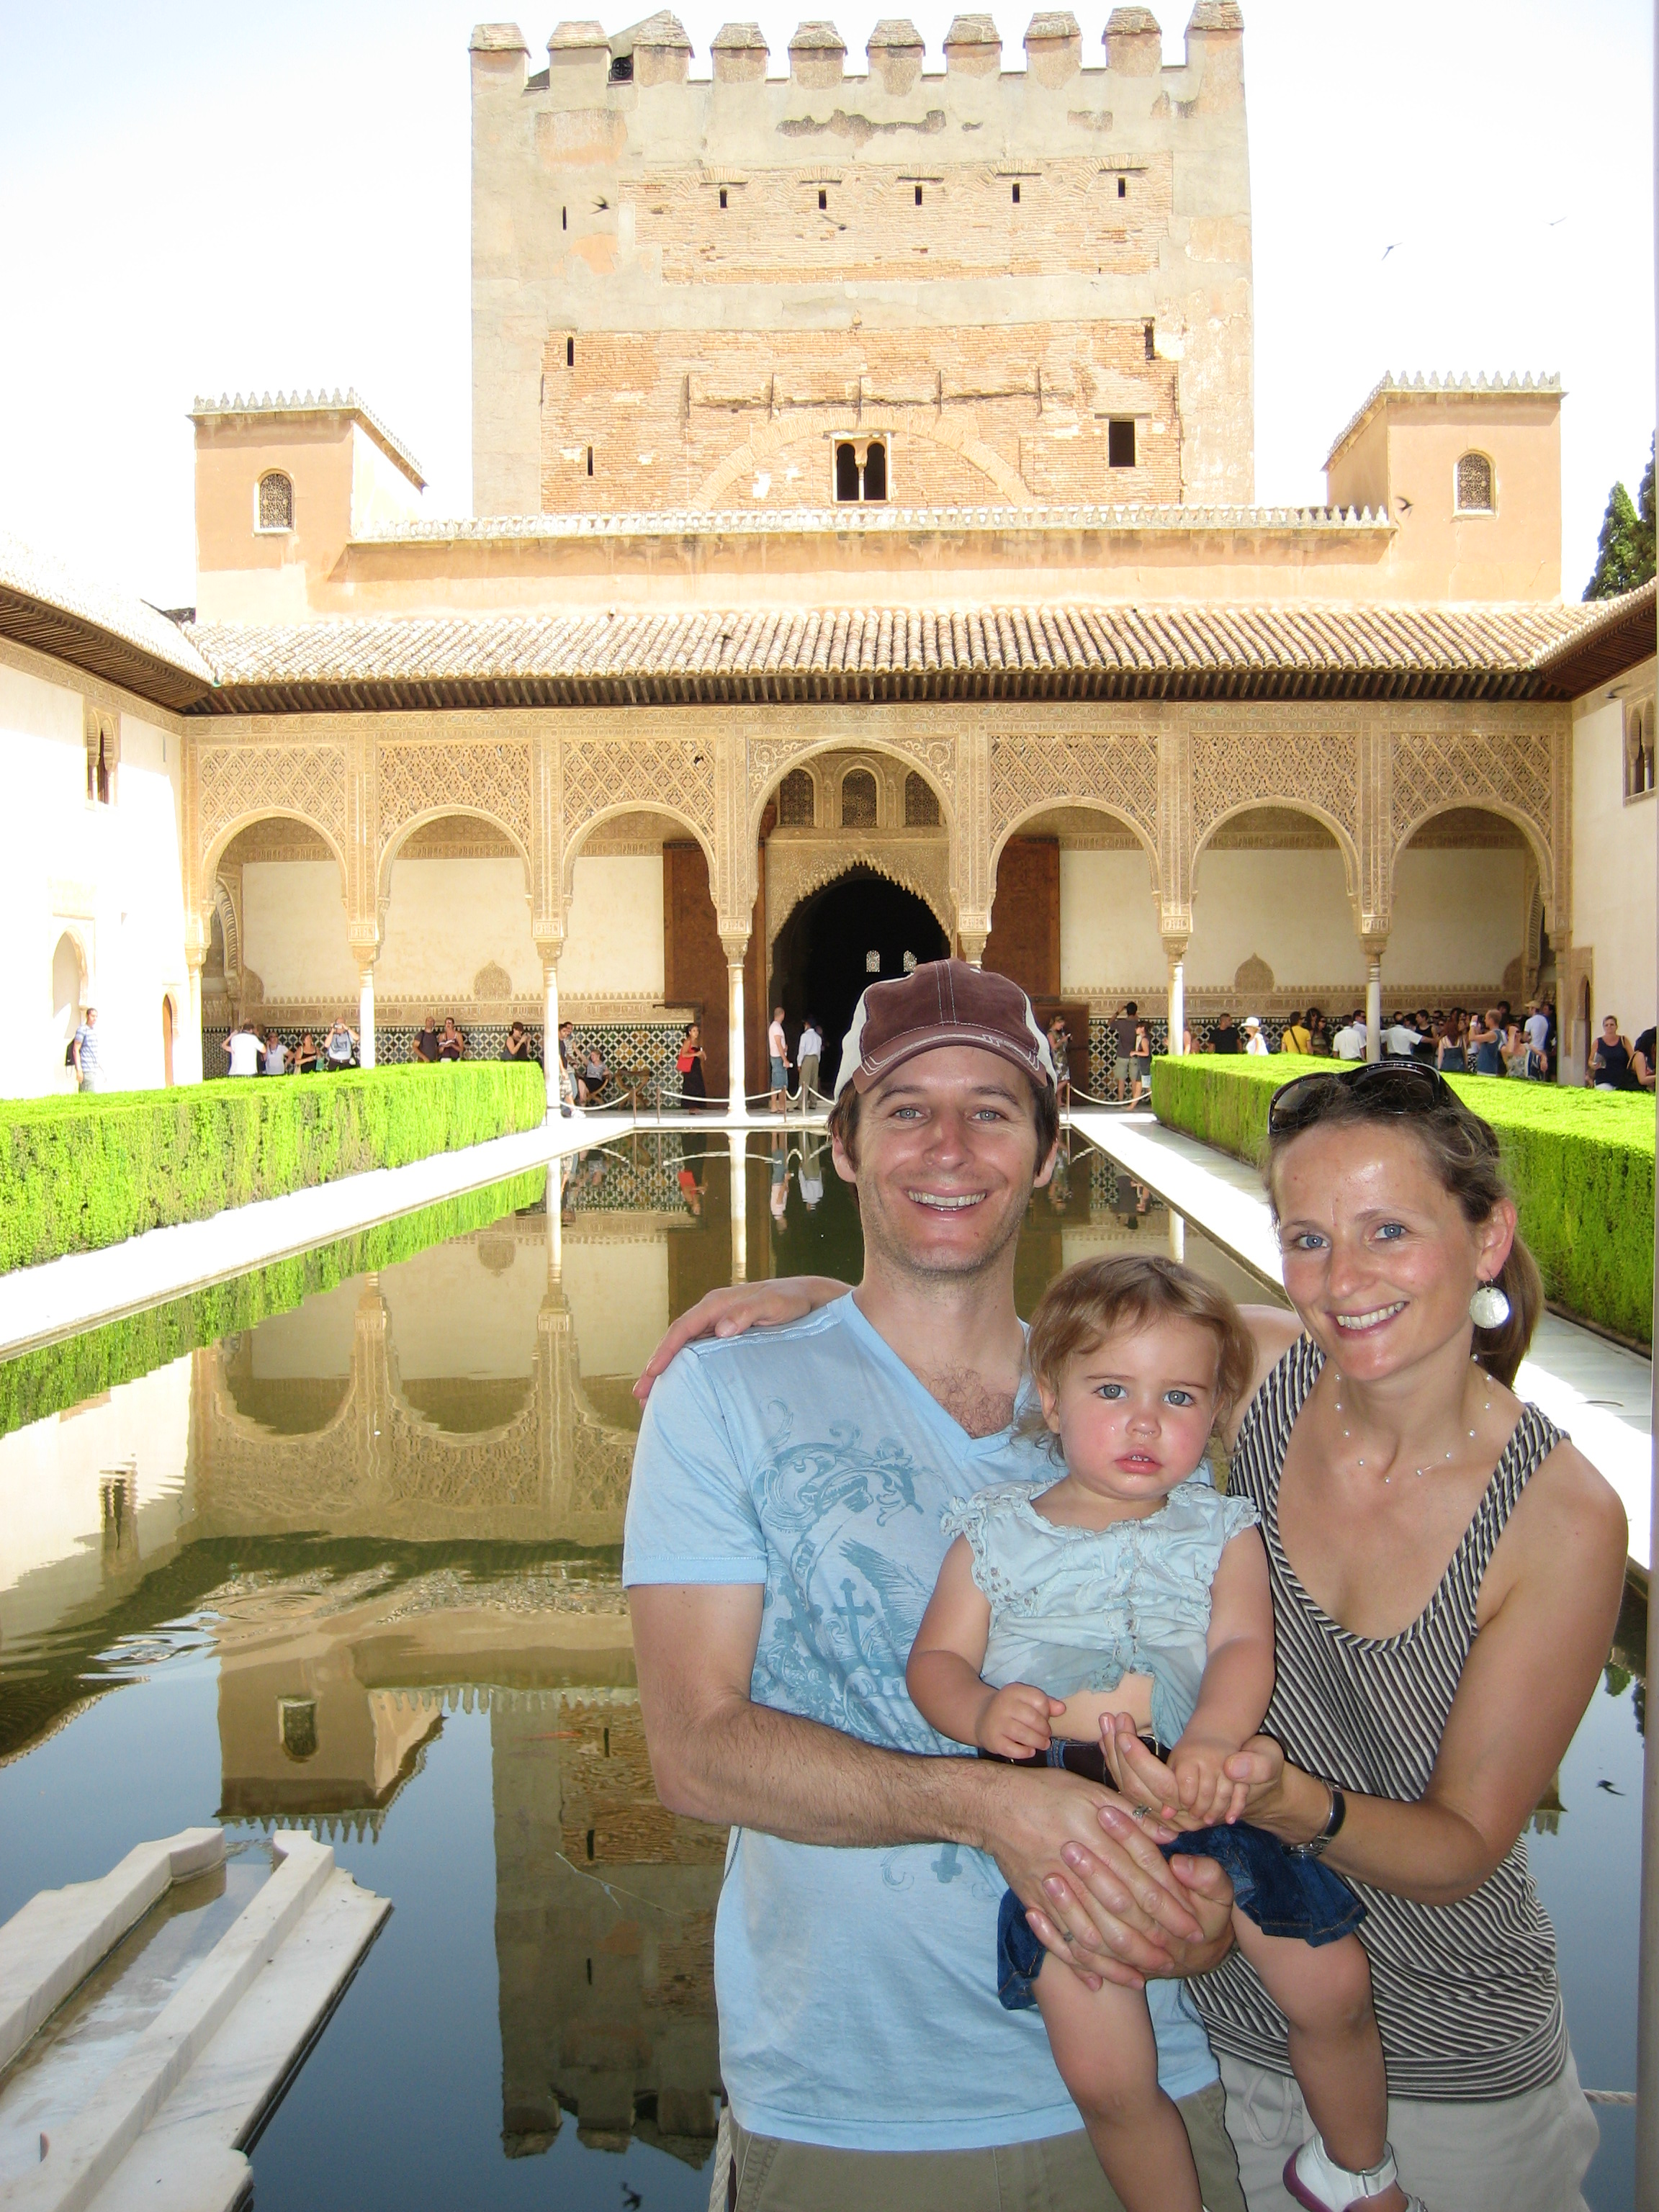 Gogobot CEO Travis Katz with family in Spain.